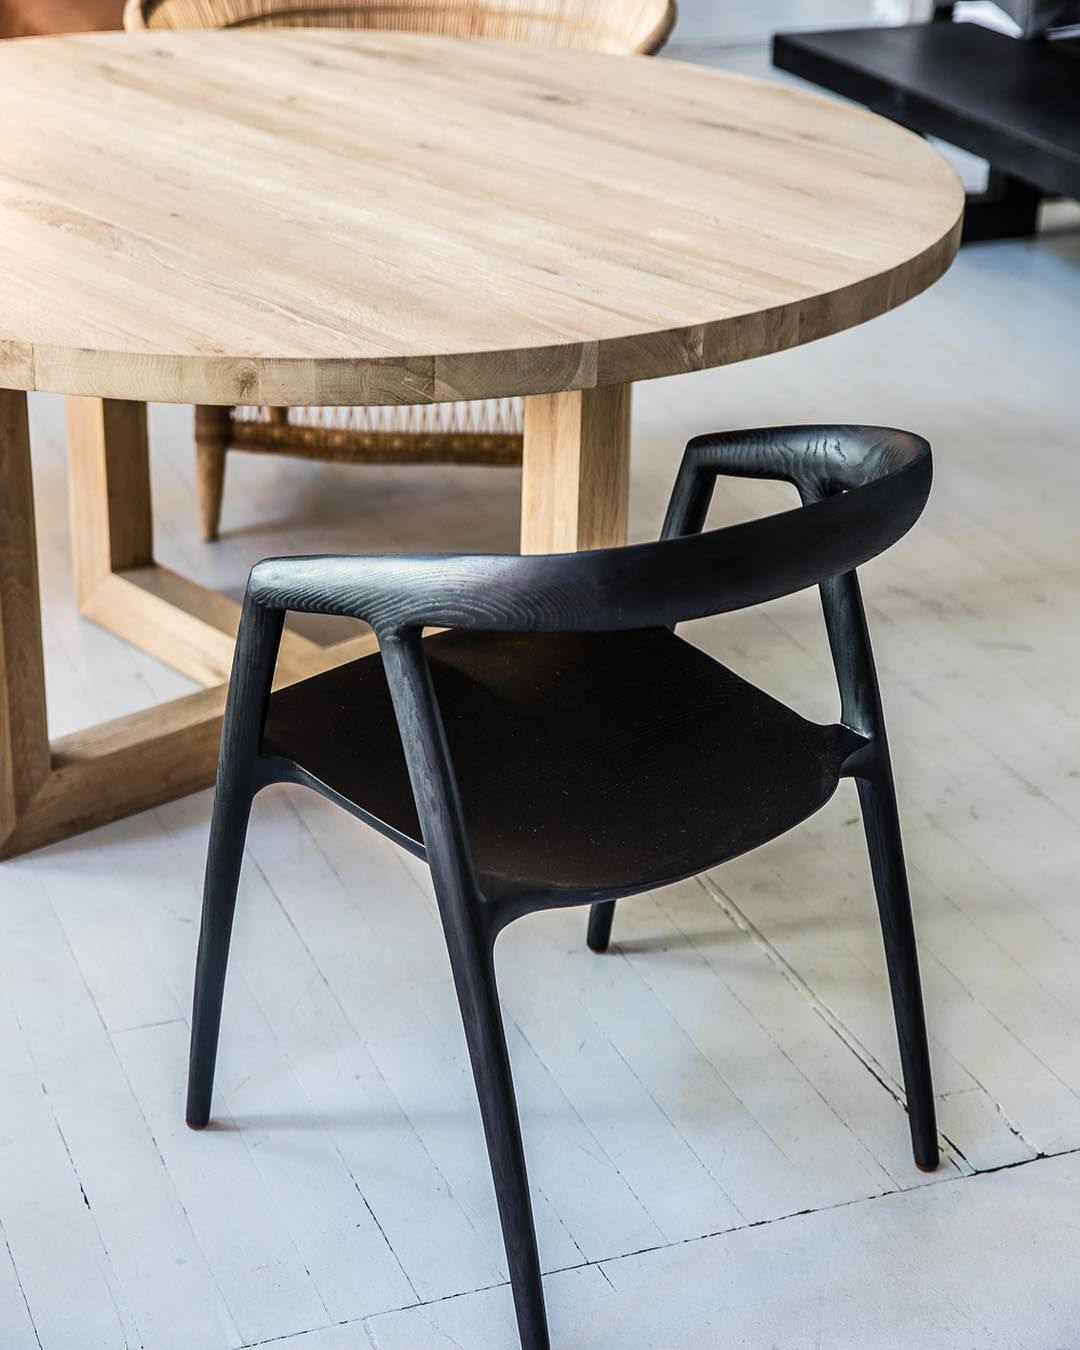 Global Circular Dining Table New Zealand Made St Clements